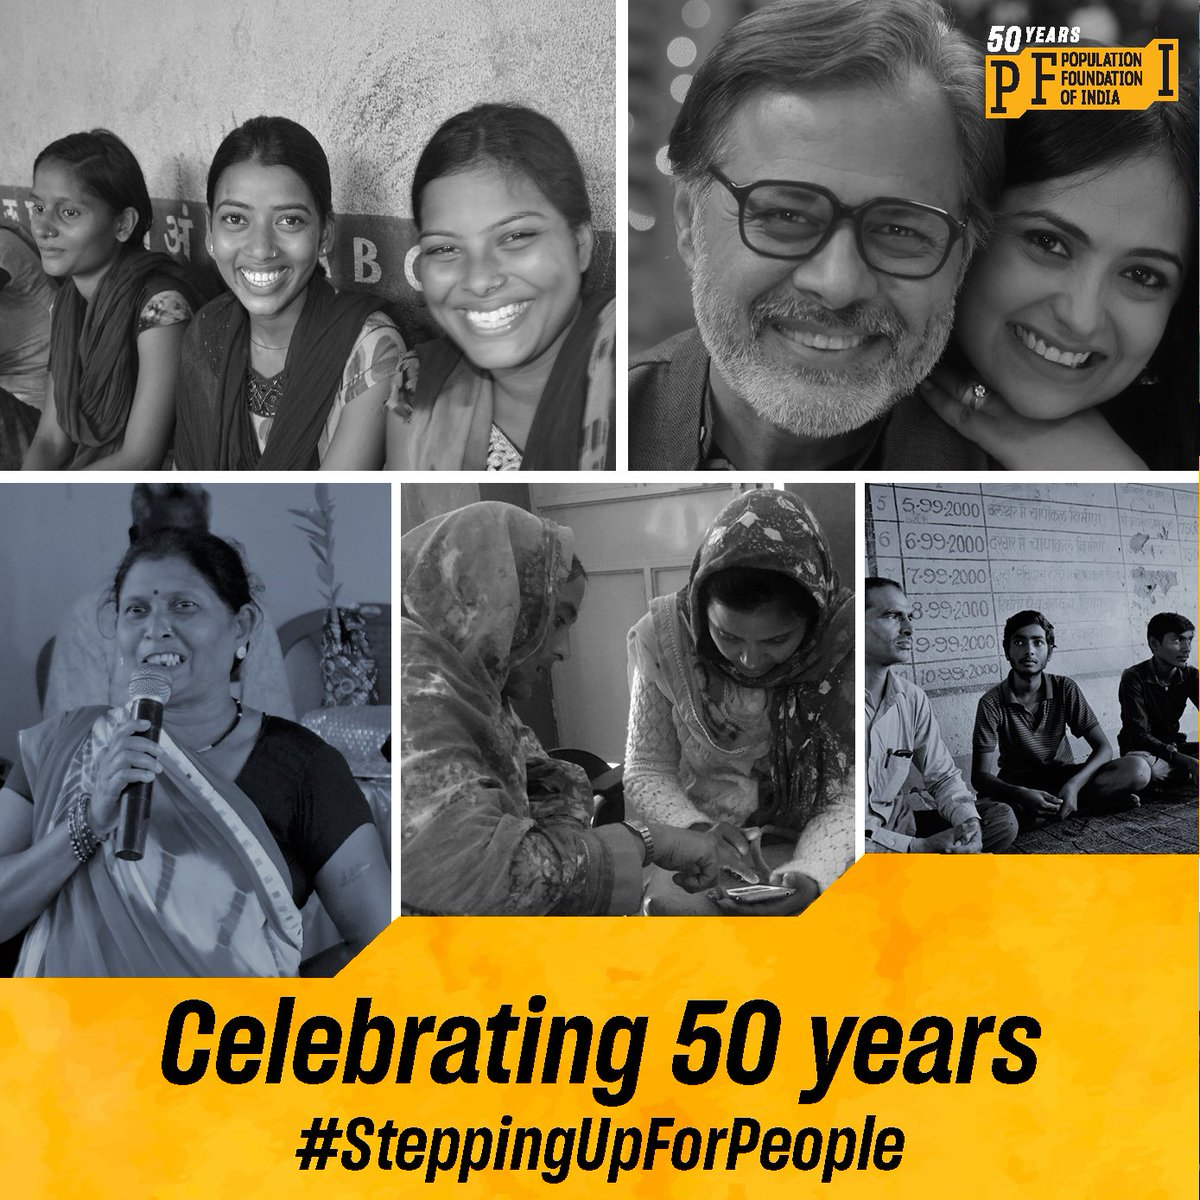 Proud to share, @PopFoundIndia has turned 50 years. It could not have been possible without the amazing contribution of our partners & our entire team of PFI. Here's to achieving many more milestones together and #SteppingUpForPeople #ThankYou #GoldenJubilee @Letstransform